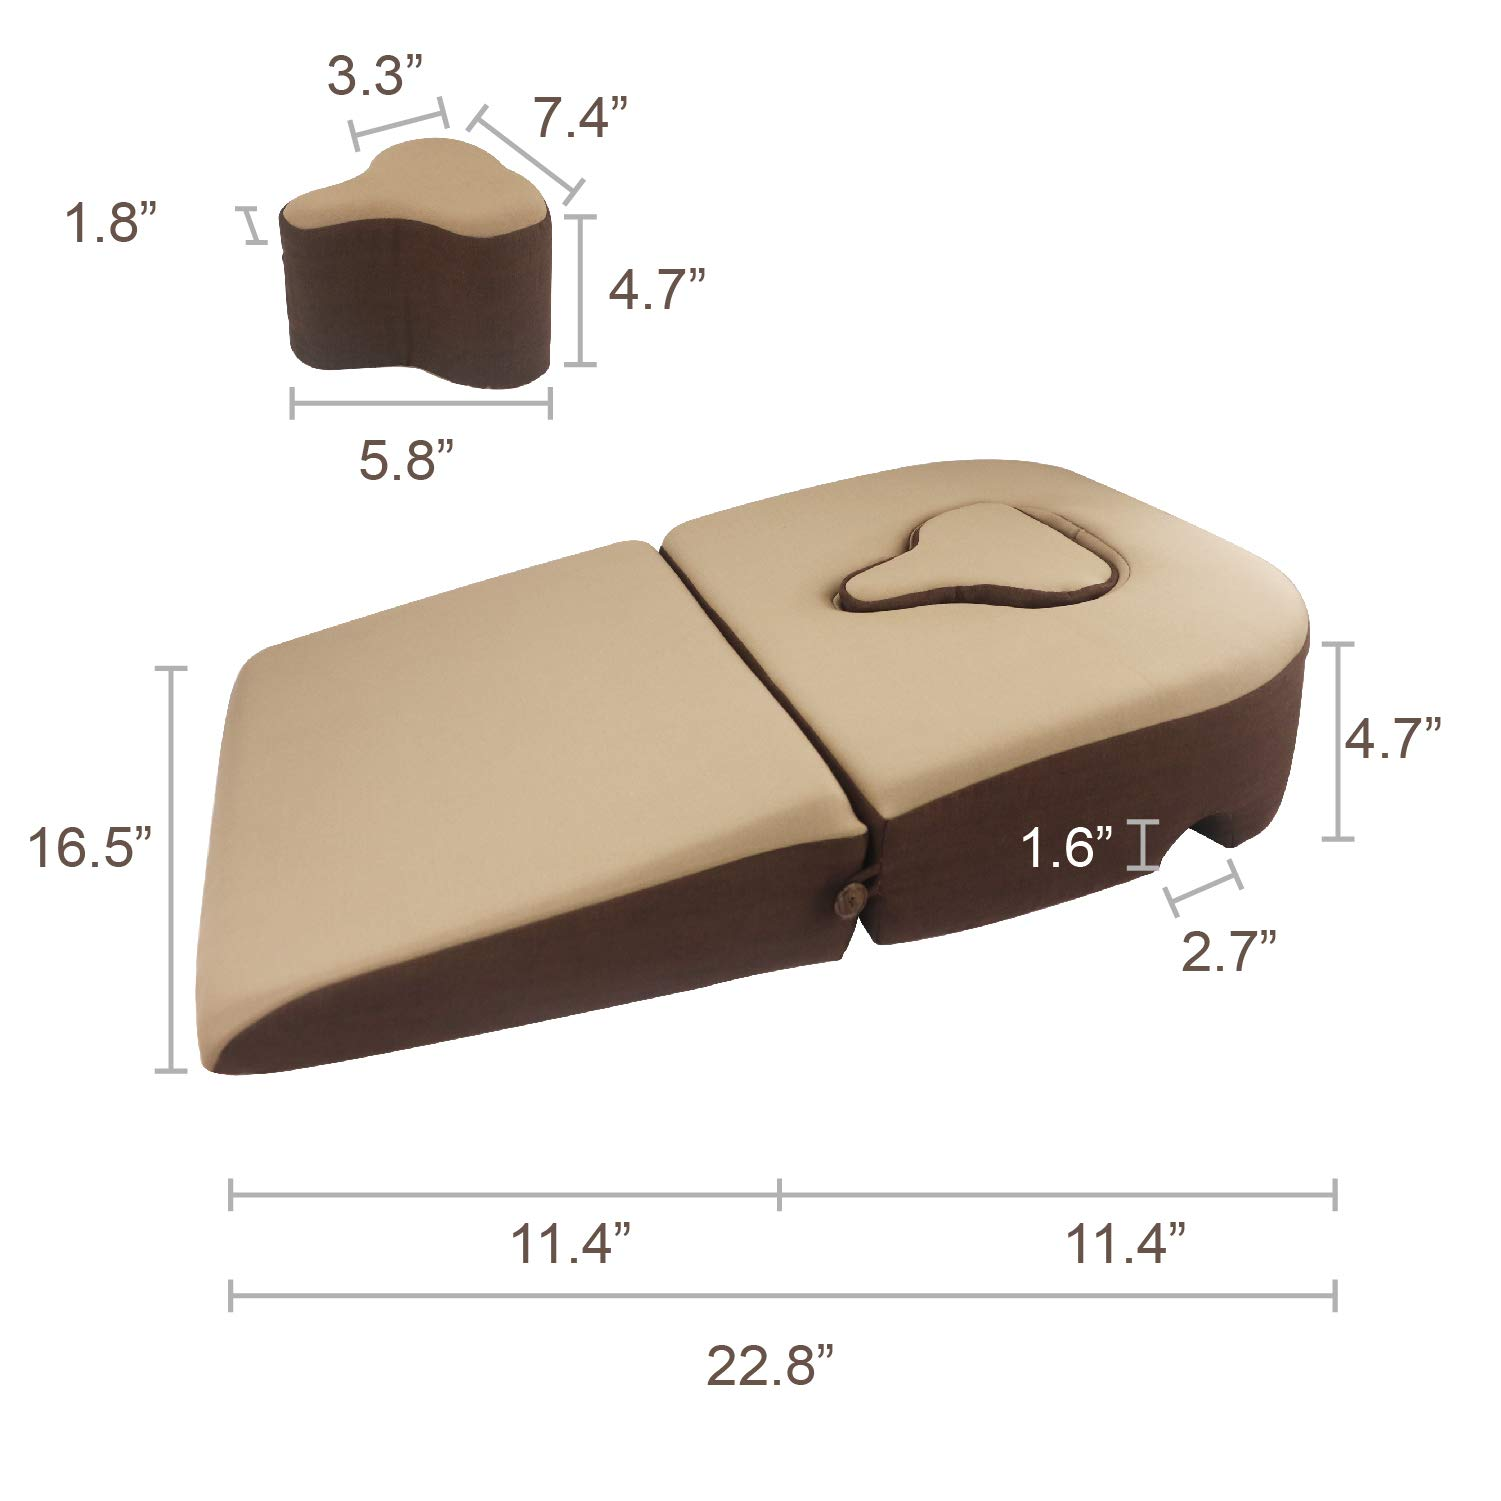 Prodigy TW Face Down Pillow, for Post-Eye-Surgery use,Wedge Cushion, Removable Cover by Prodigy TW (Image #4)